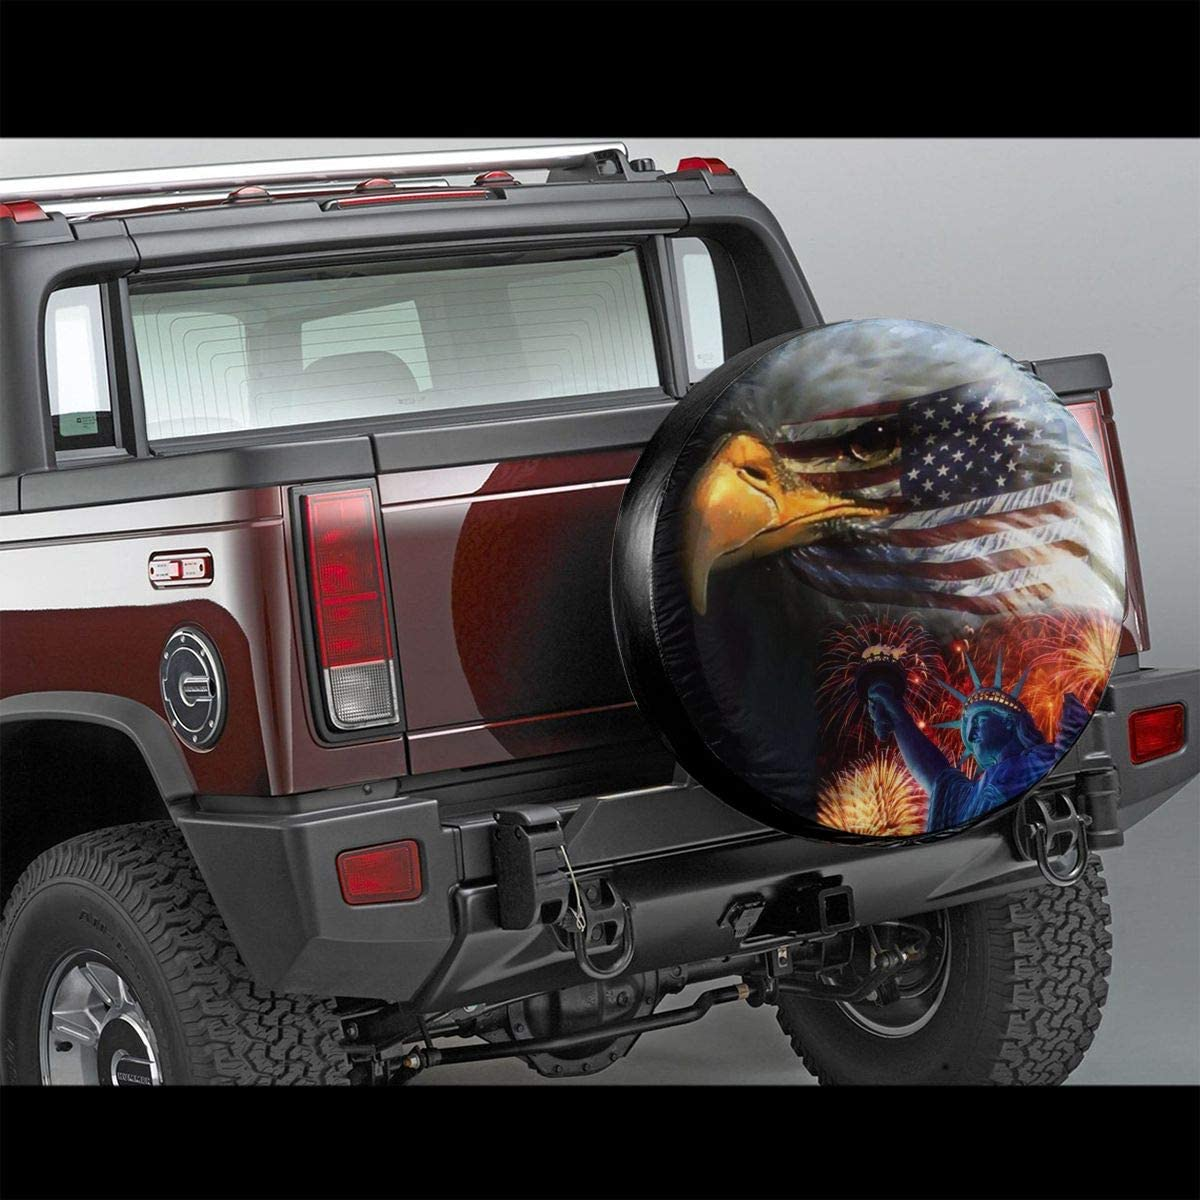 SUV and Many Vehicle 14 15 16 17 Rv MSGUIDE Spare Tire Covers Eagle American Flag Waterproof Dust-Proof Sun Protectors Universal Wheel Cover Fit for Jeep,Trailer